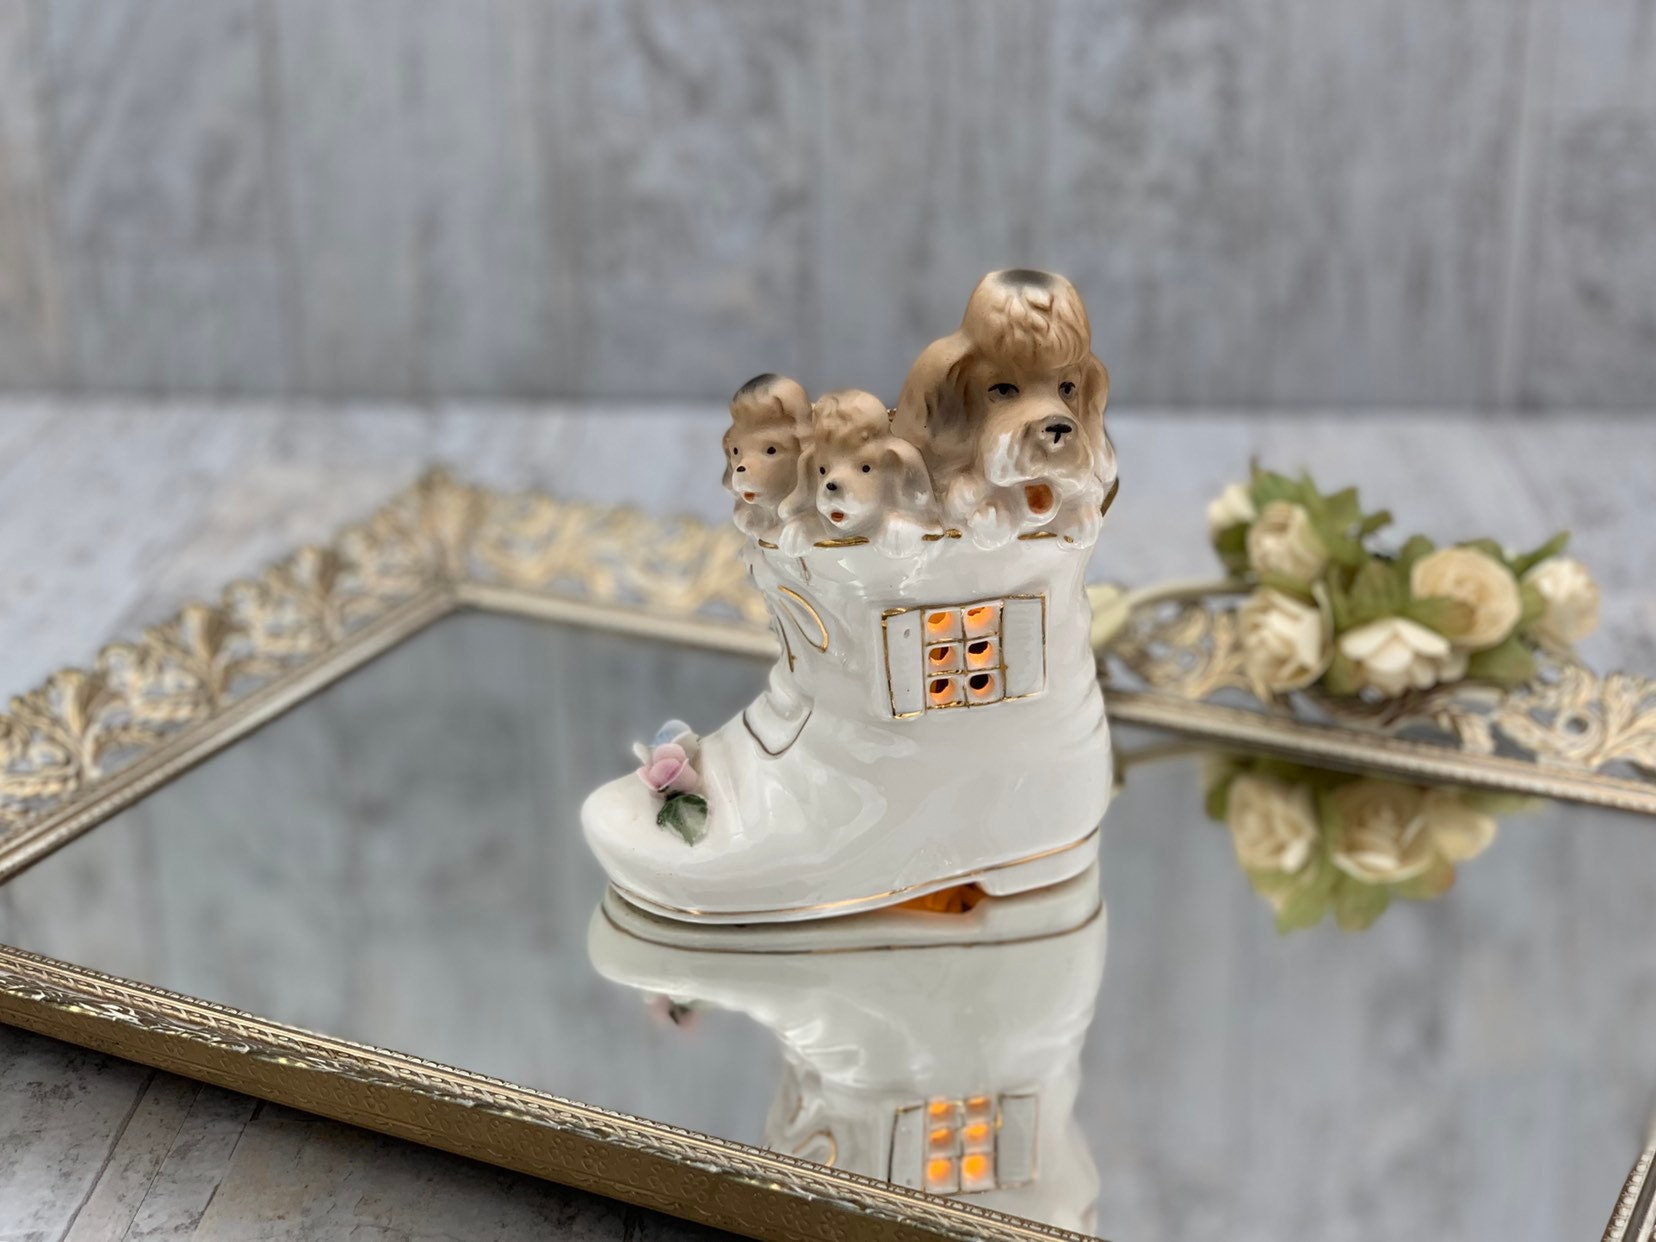 Vintage Puppy Nightlight by I W Rice Company, little Victorian